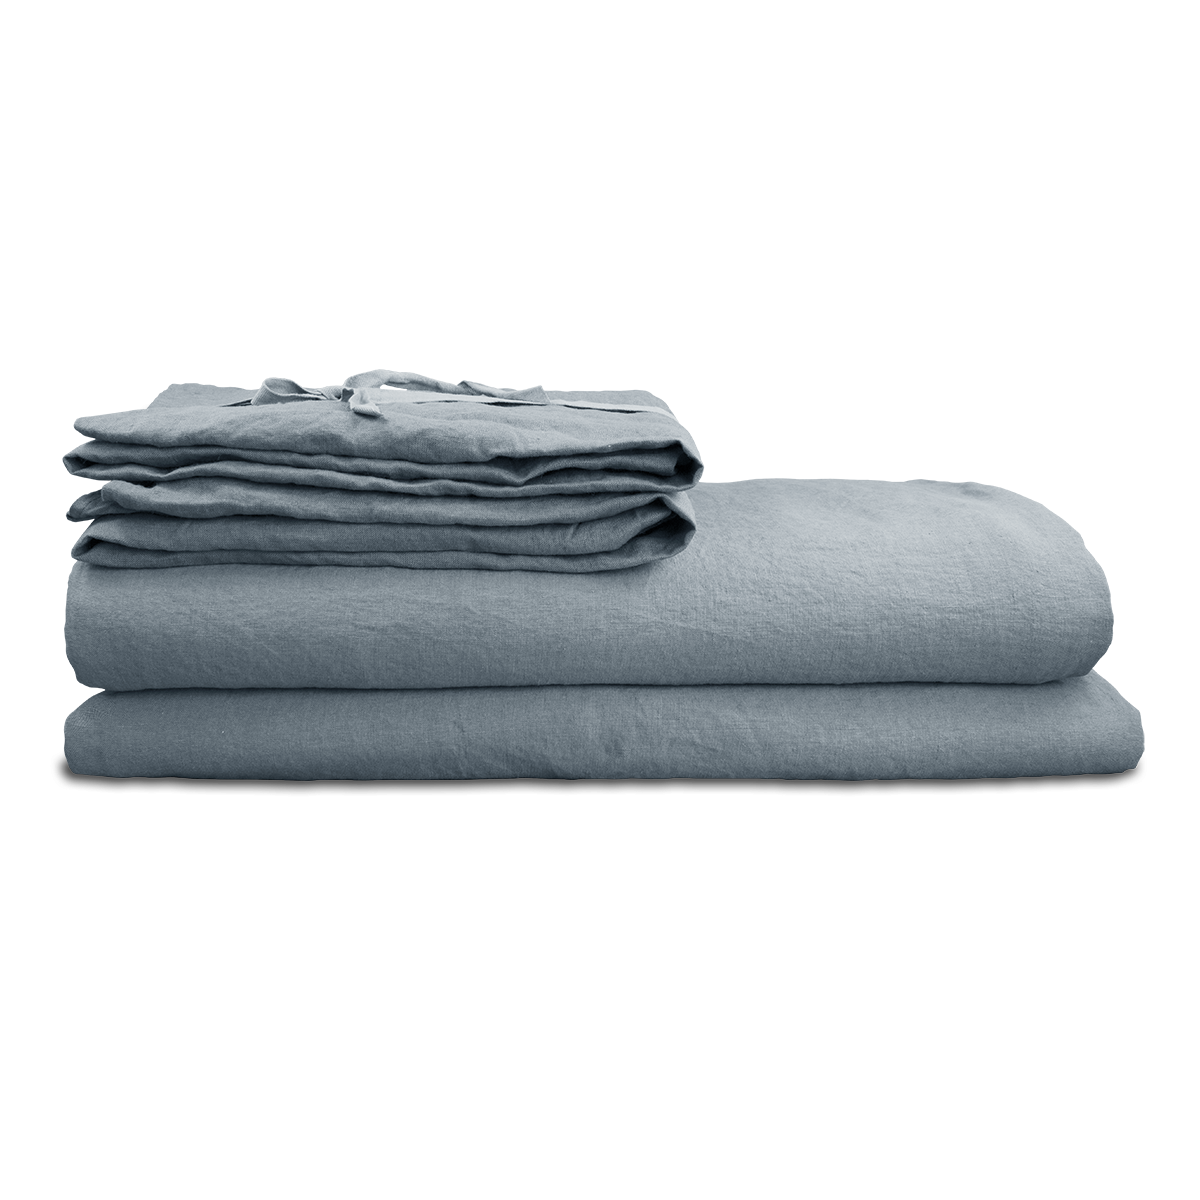 HEY EXCLUSIVE - Sheet Set with Duvet Cover